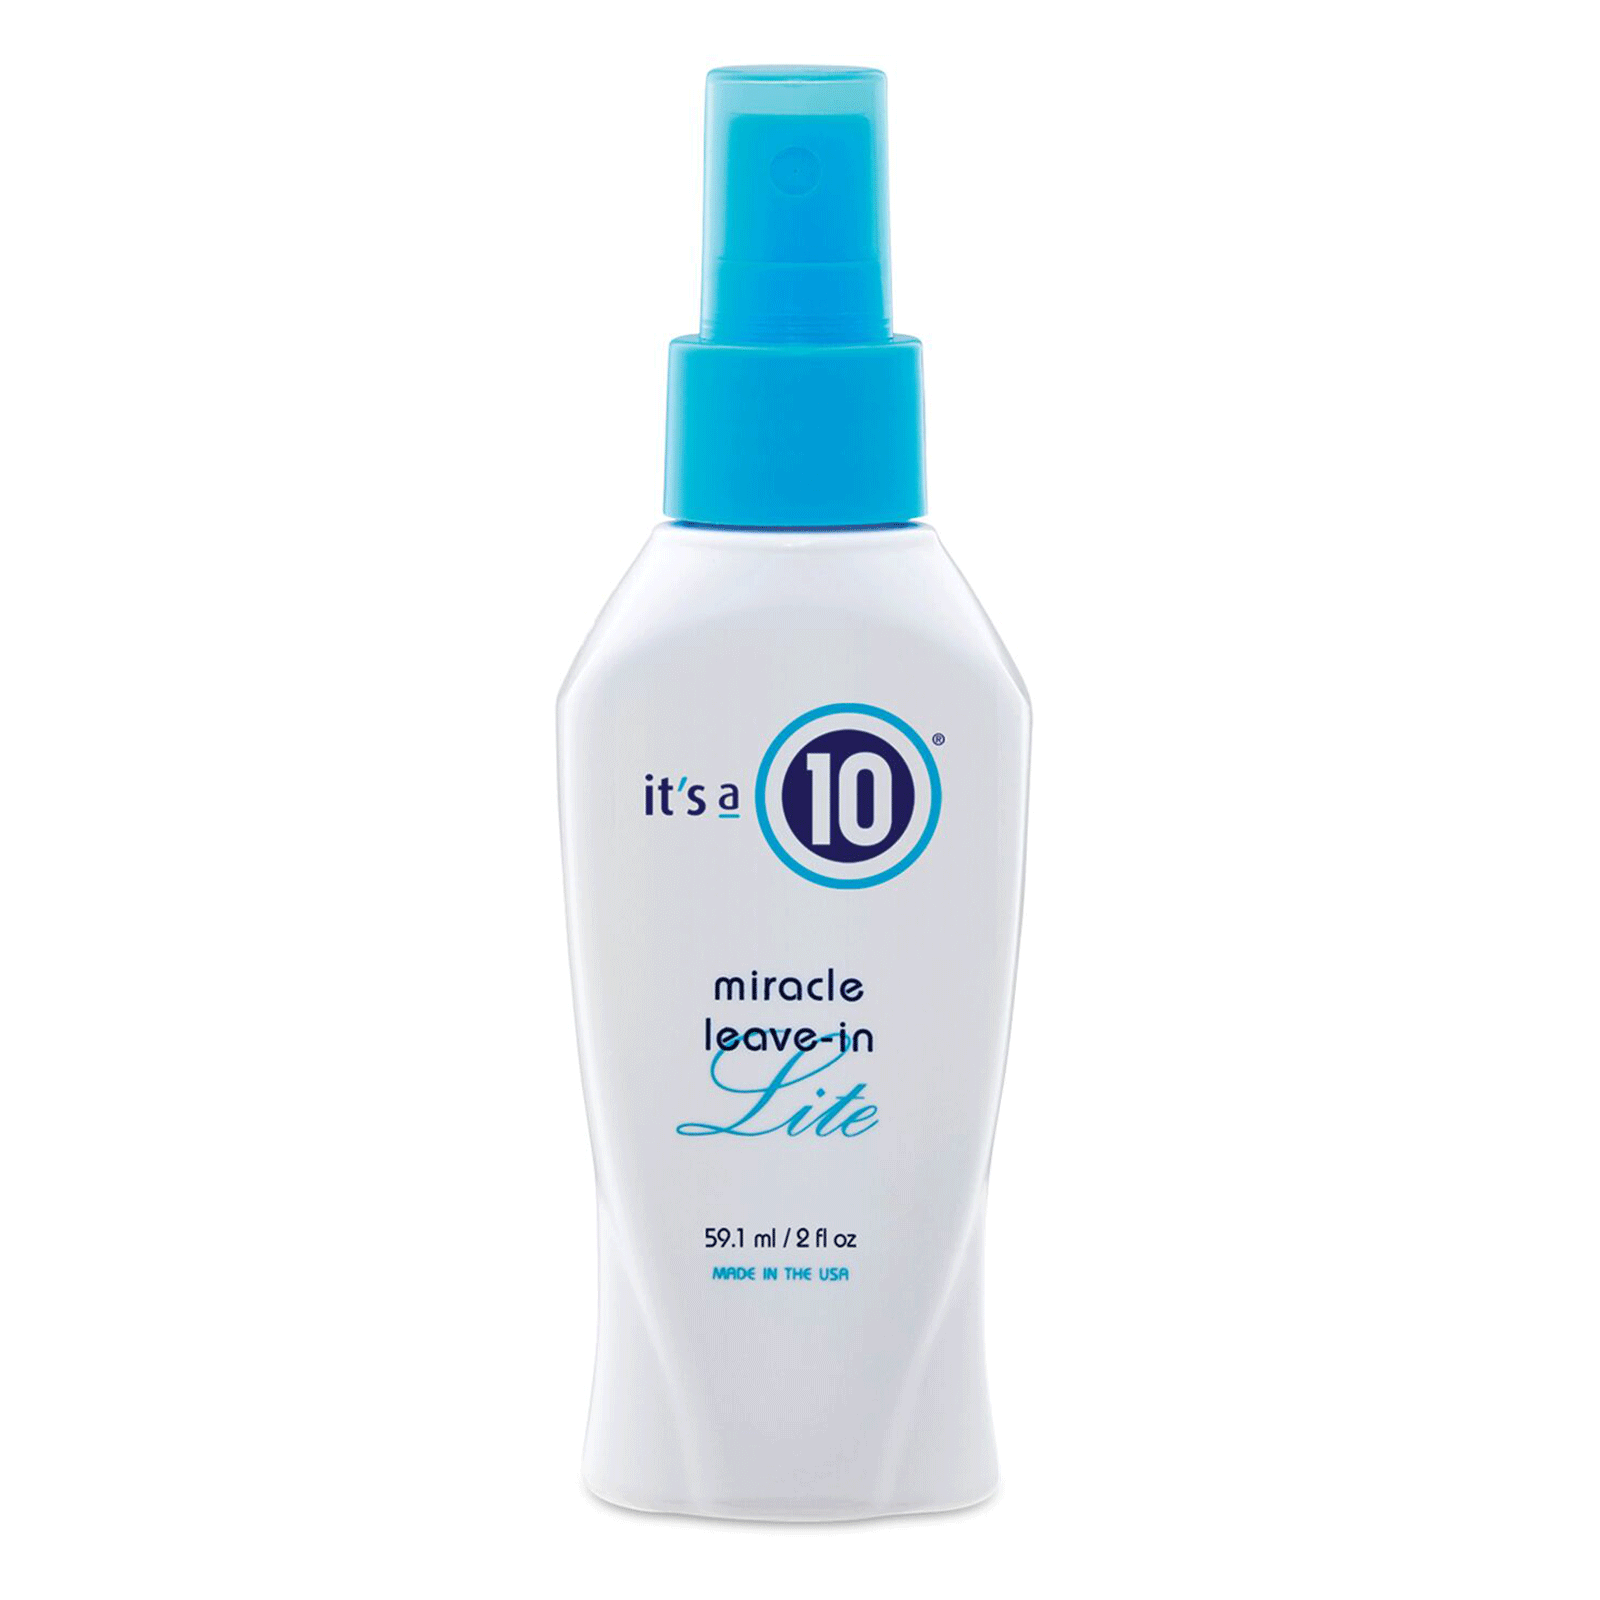 Miracle Volumizing Leave-In Lite